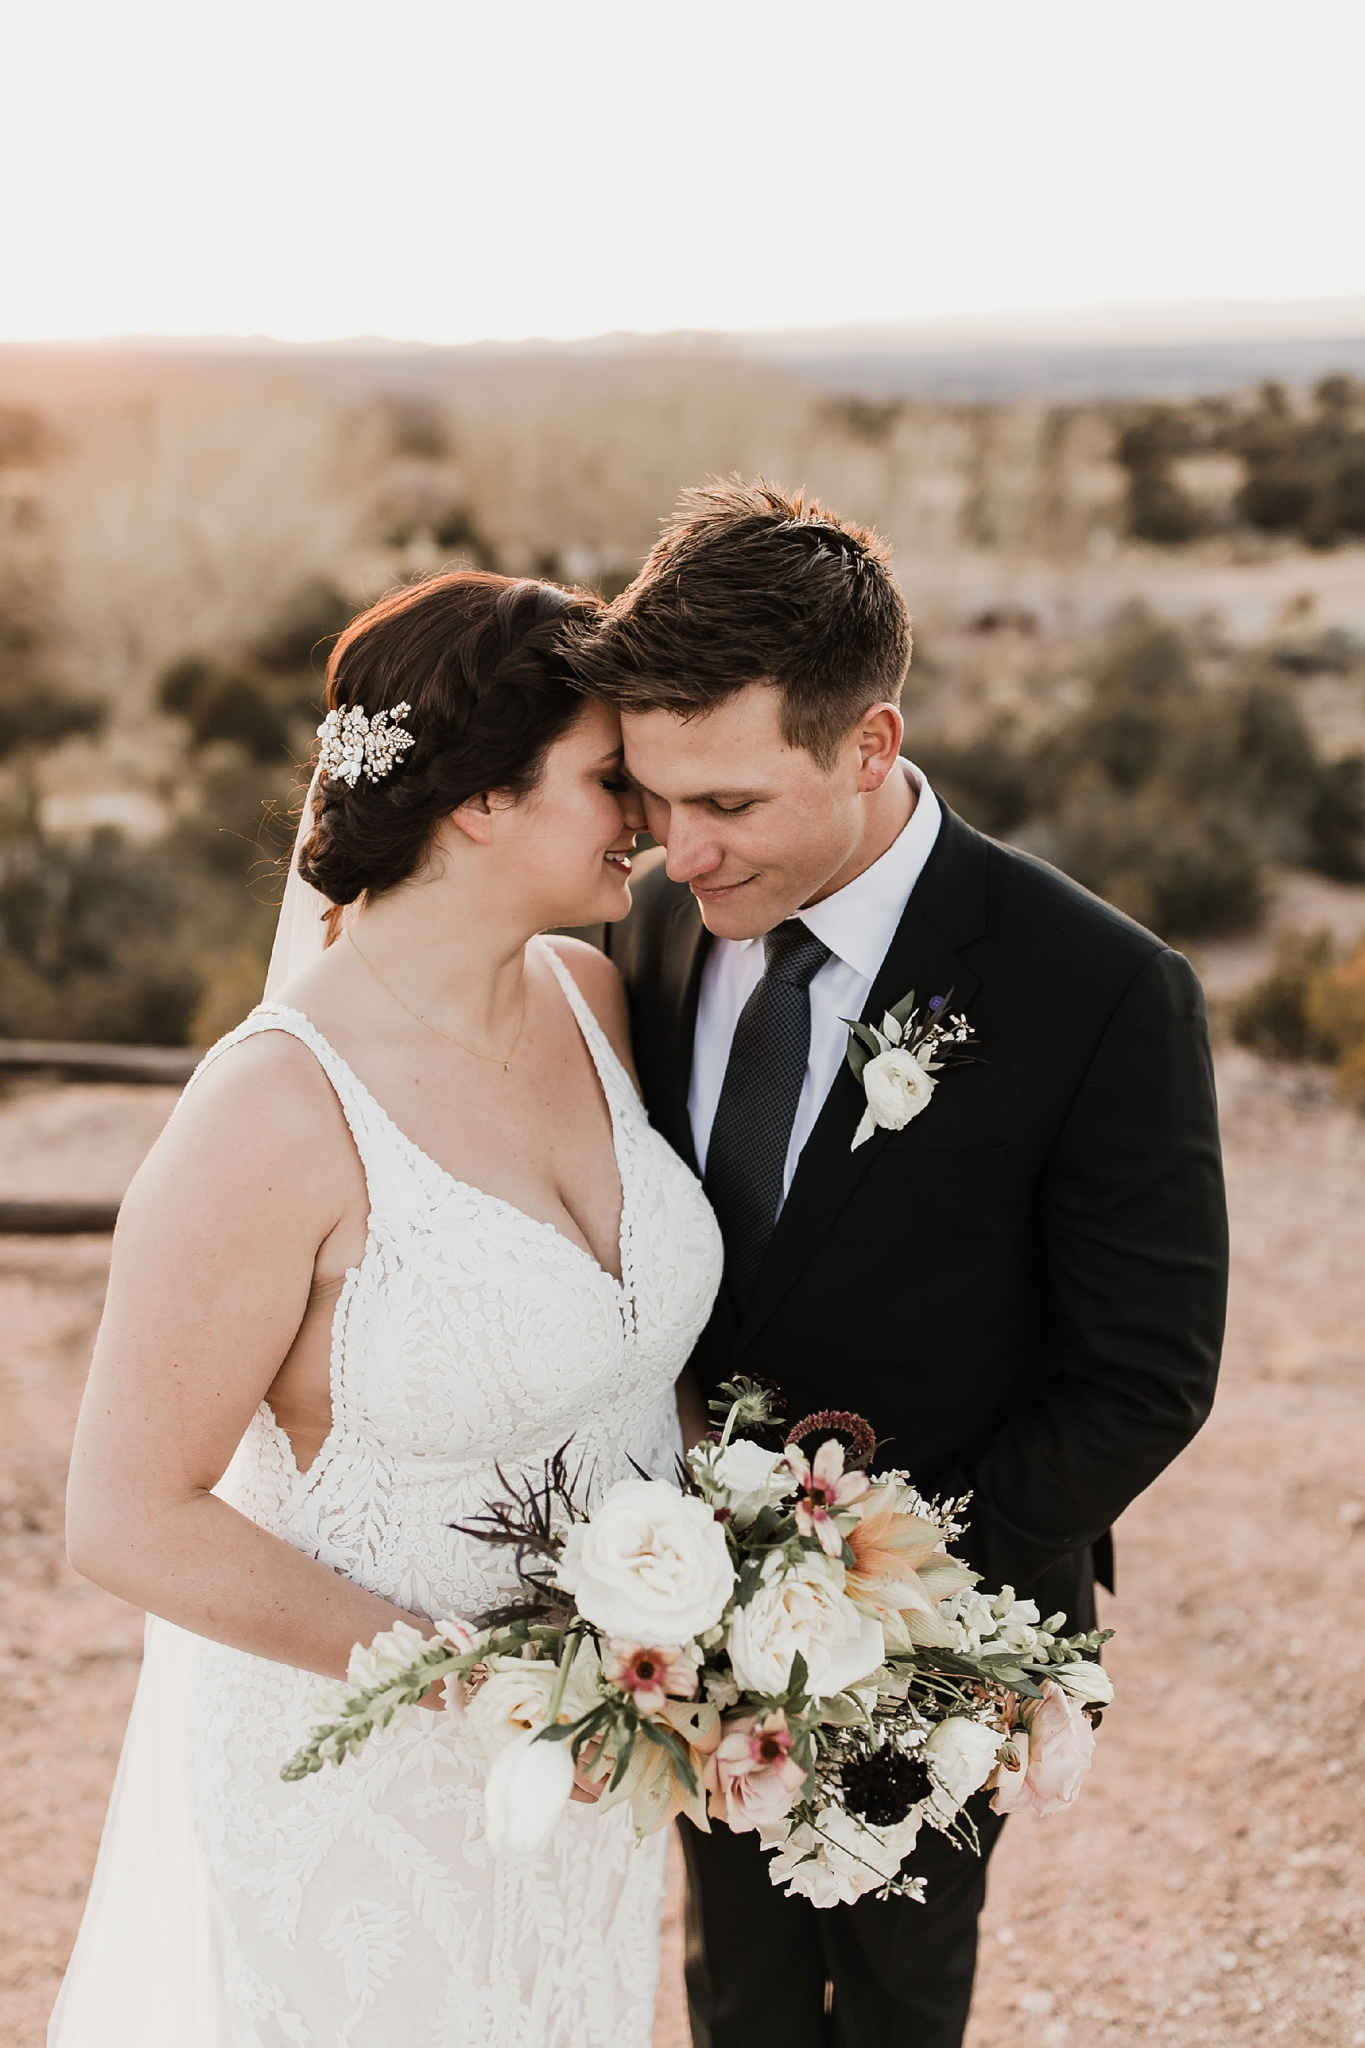 Alicia+lucia+photography+-+albuquerque+wedding+photographer+-+santa+fe+wedding+photography+-+new+mexico+wedding+photographer+-+new+mexico+wedding+-+santa+fe+wedding+-+albuquerque+wedding+-+bridal+hair_0014.jpg